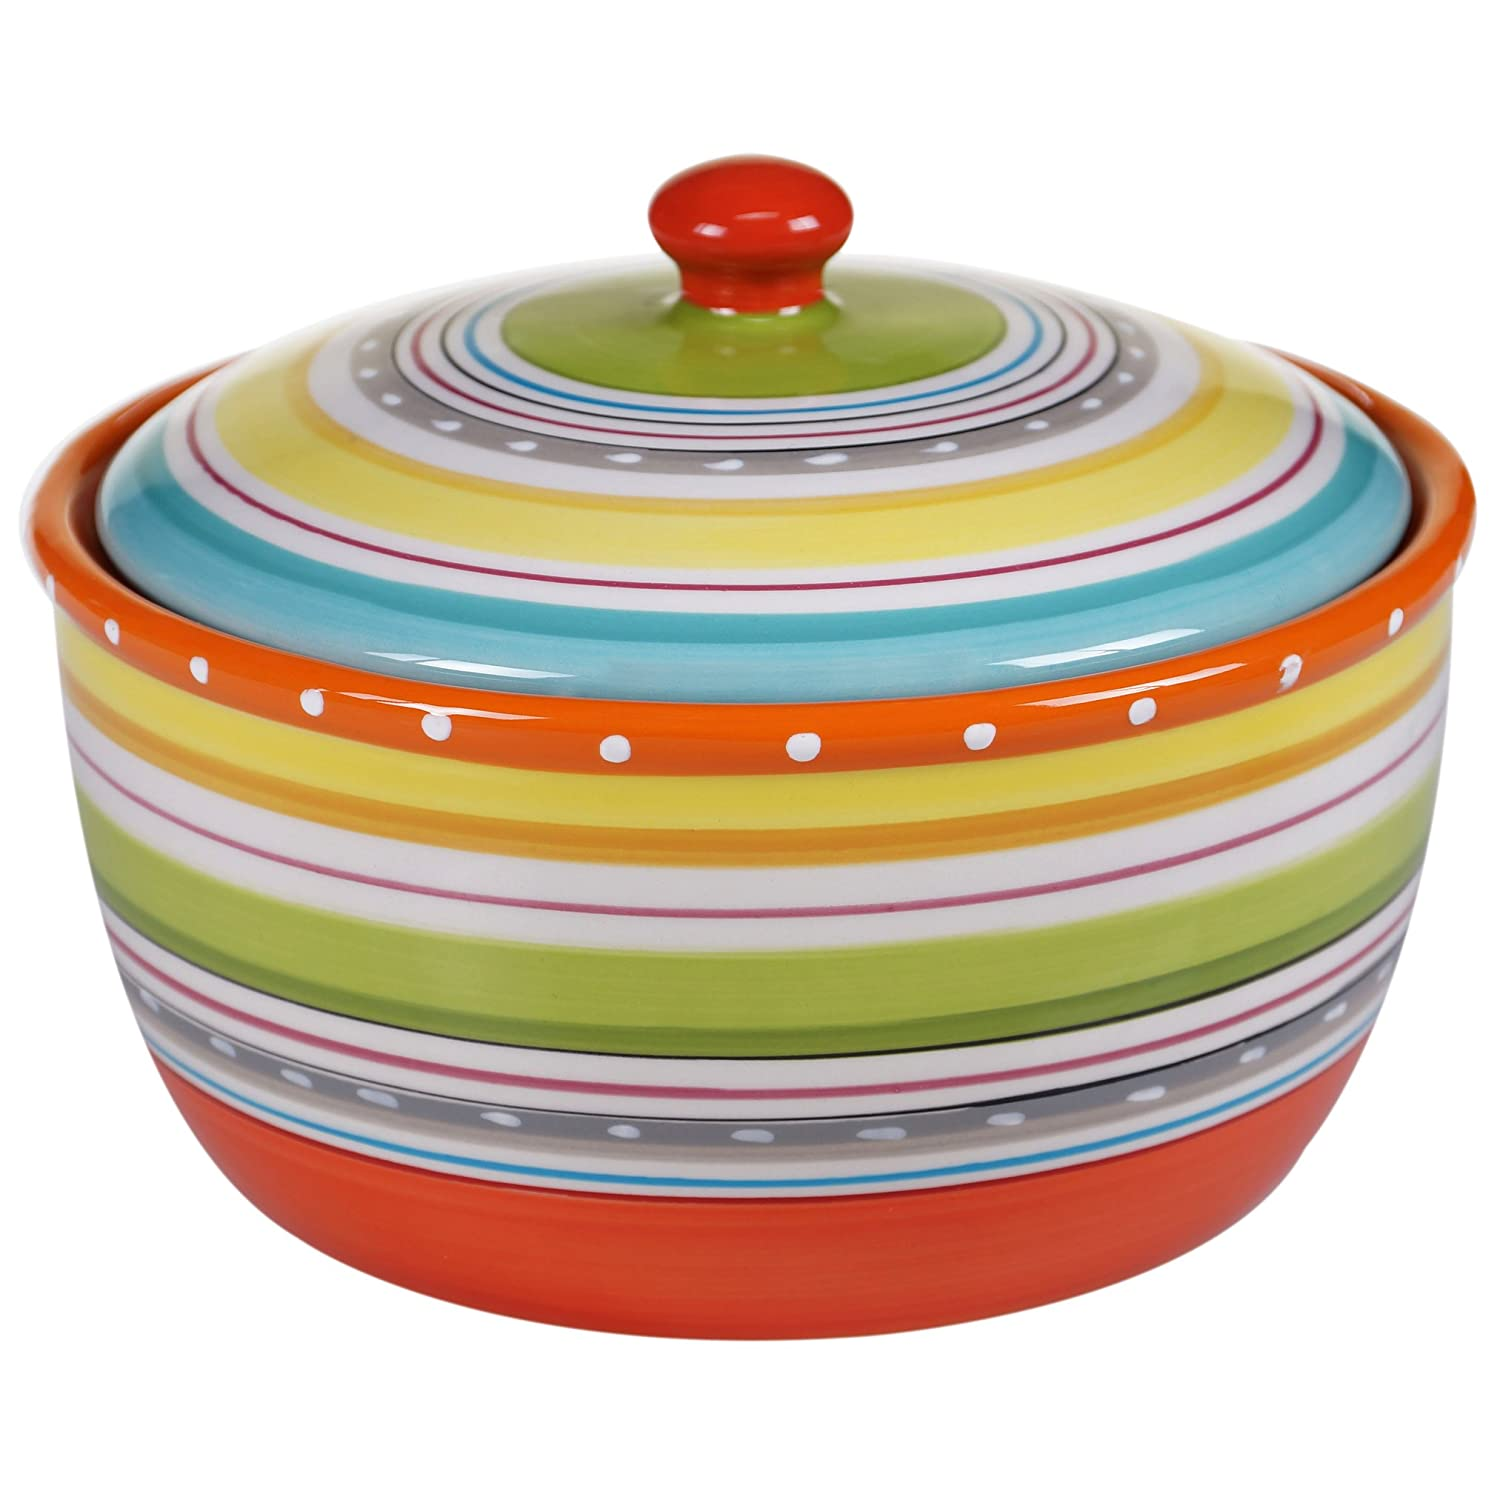 Certified International 25647 Mariachi Bakeware Bean Pot, 2.5 quart, Multicolor